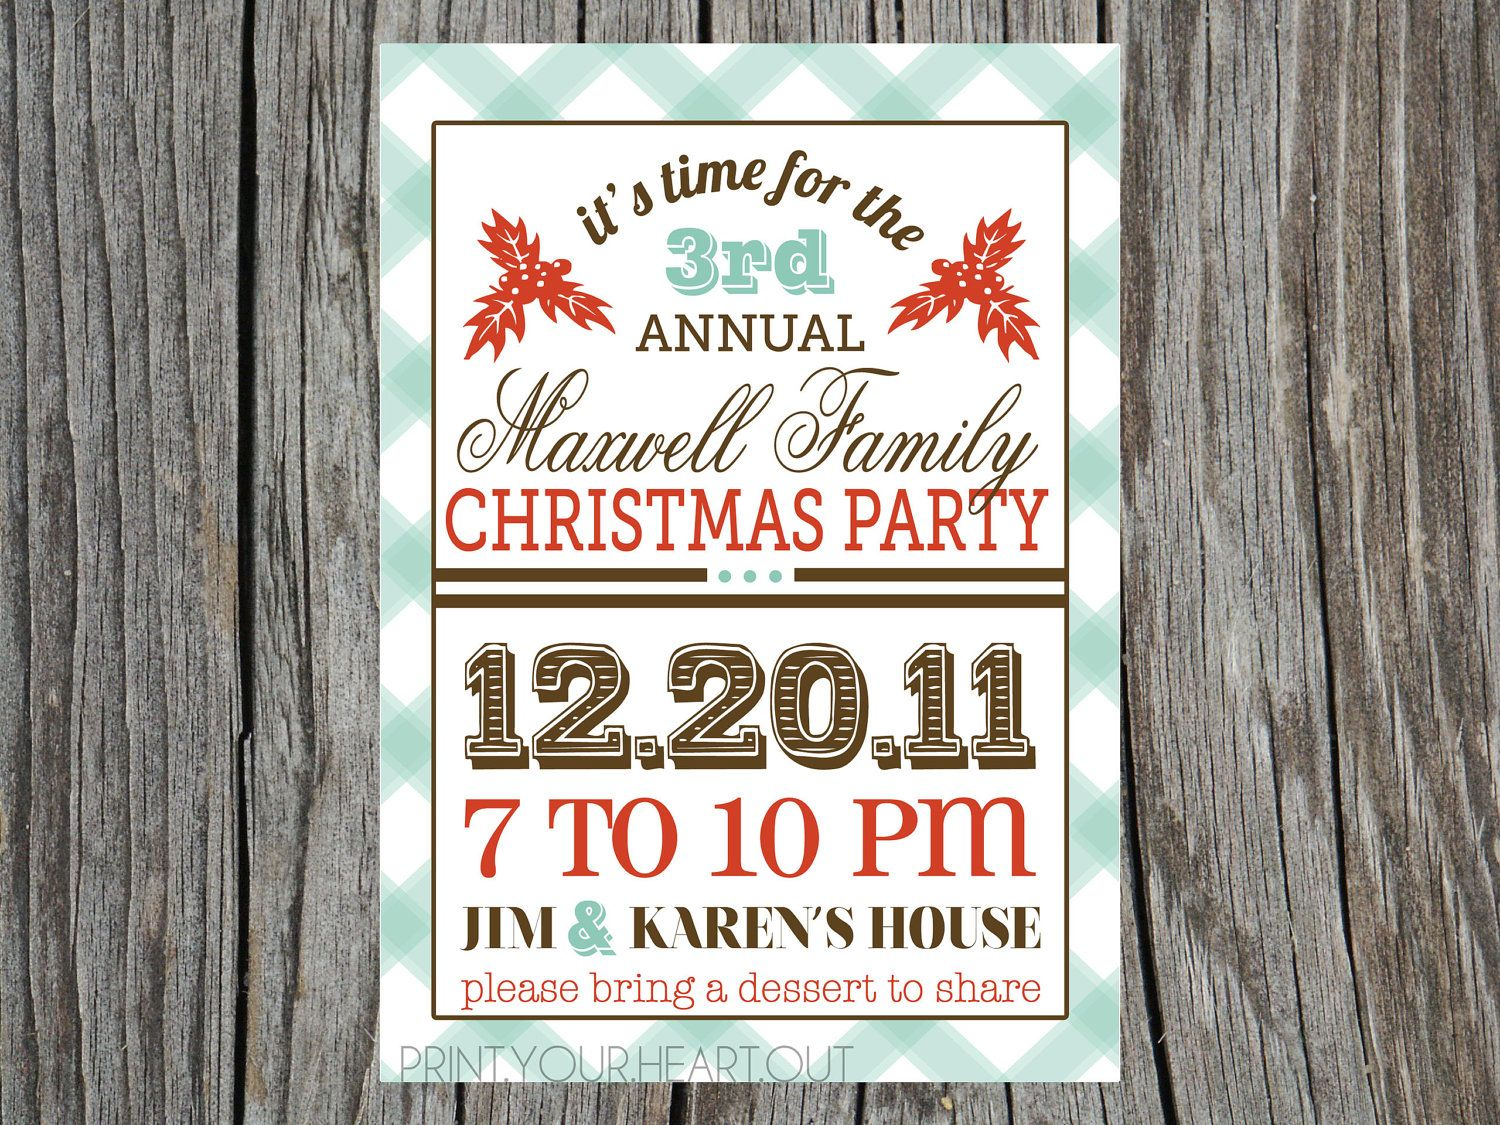 Retro Christmas Party Ideas Part - 41: Vintage Retro Christmas Party Invitation I Really Like This Idea For My Mom  And Dadu0027s Annual Xmas Party! Plain, Simple, And To The Point!